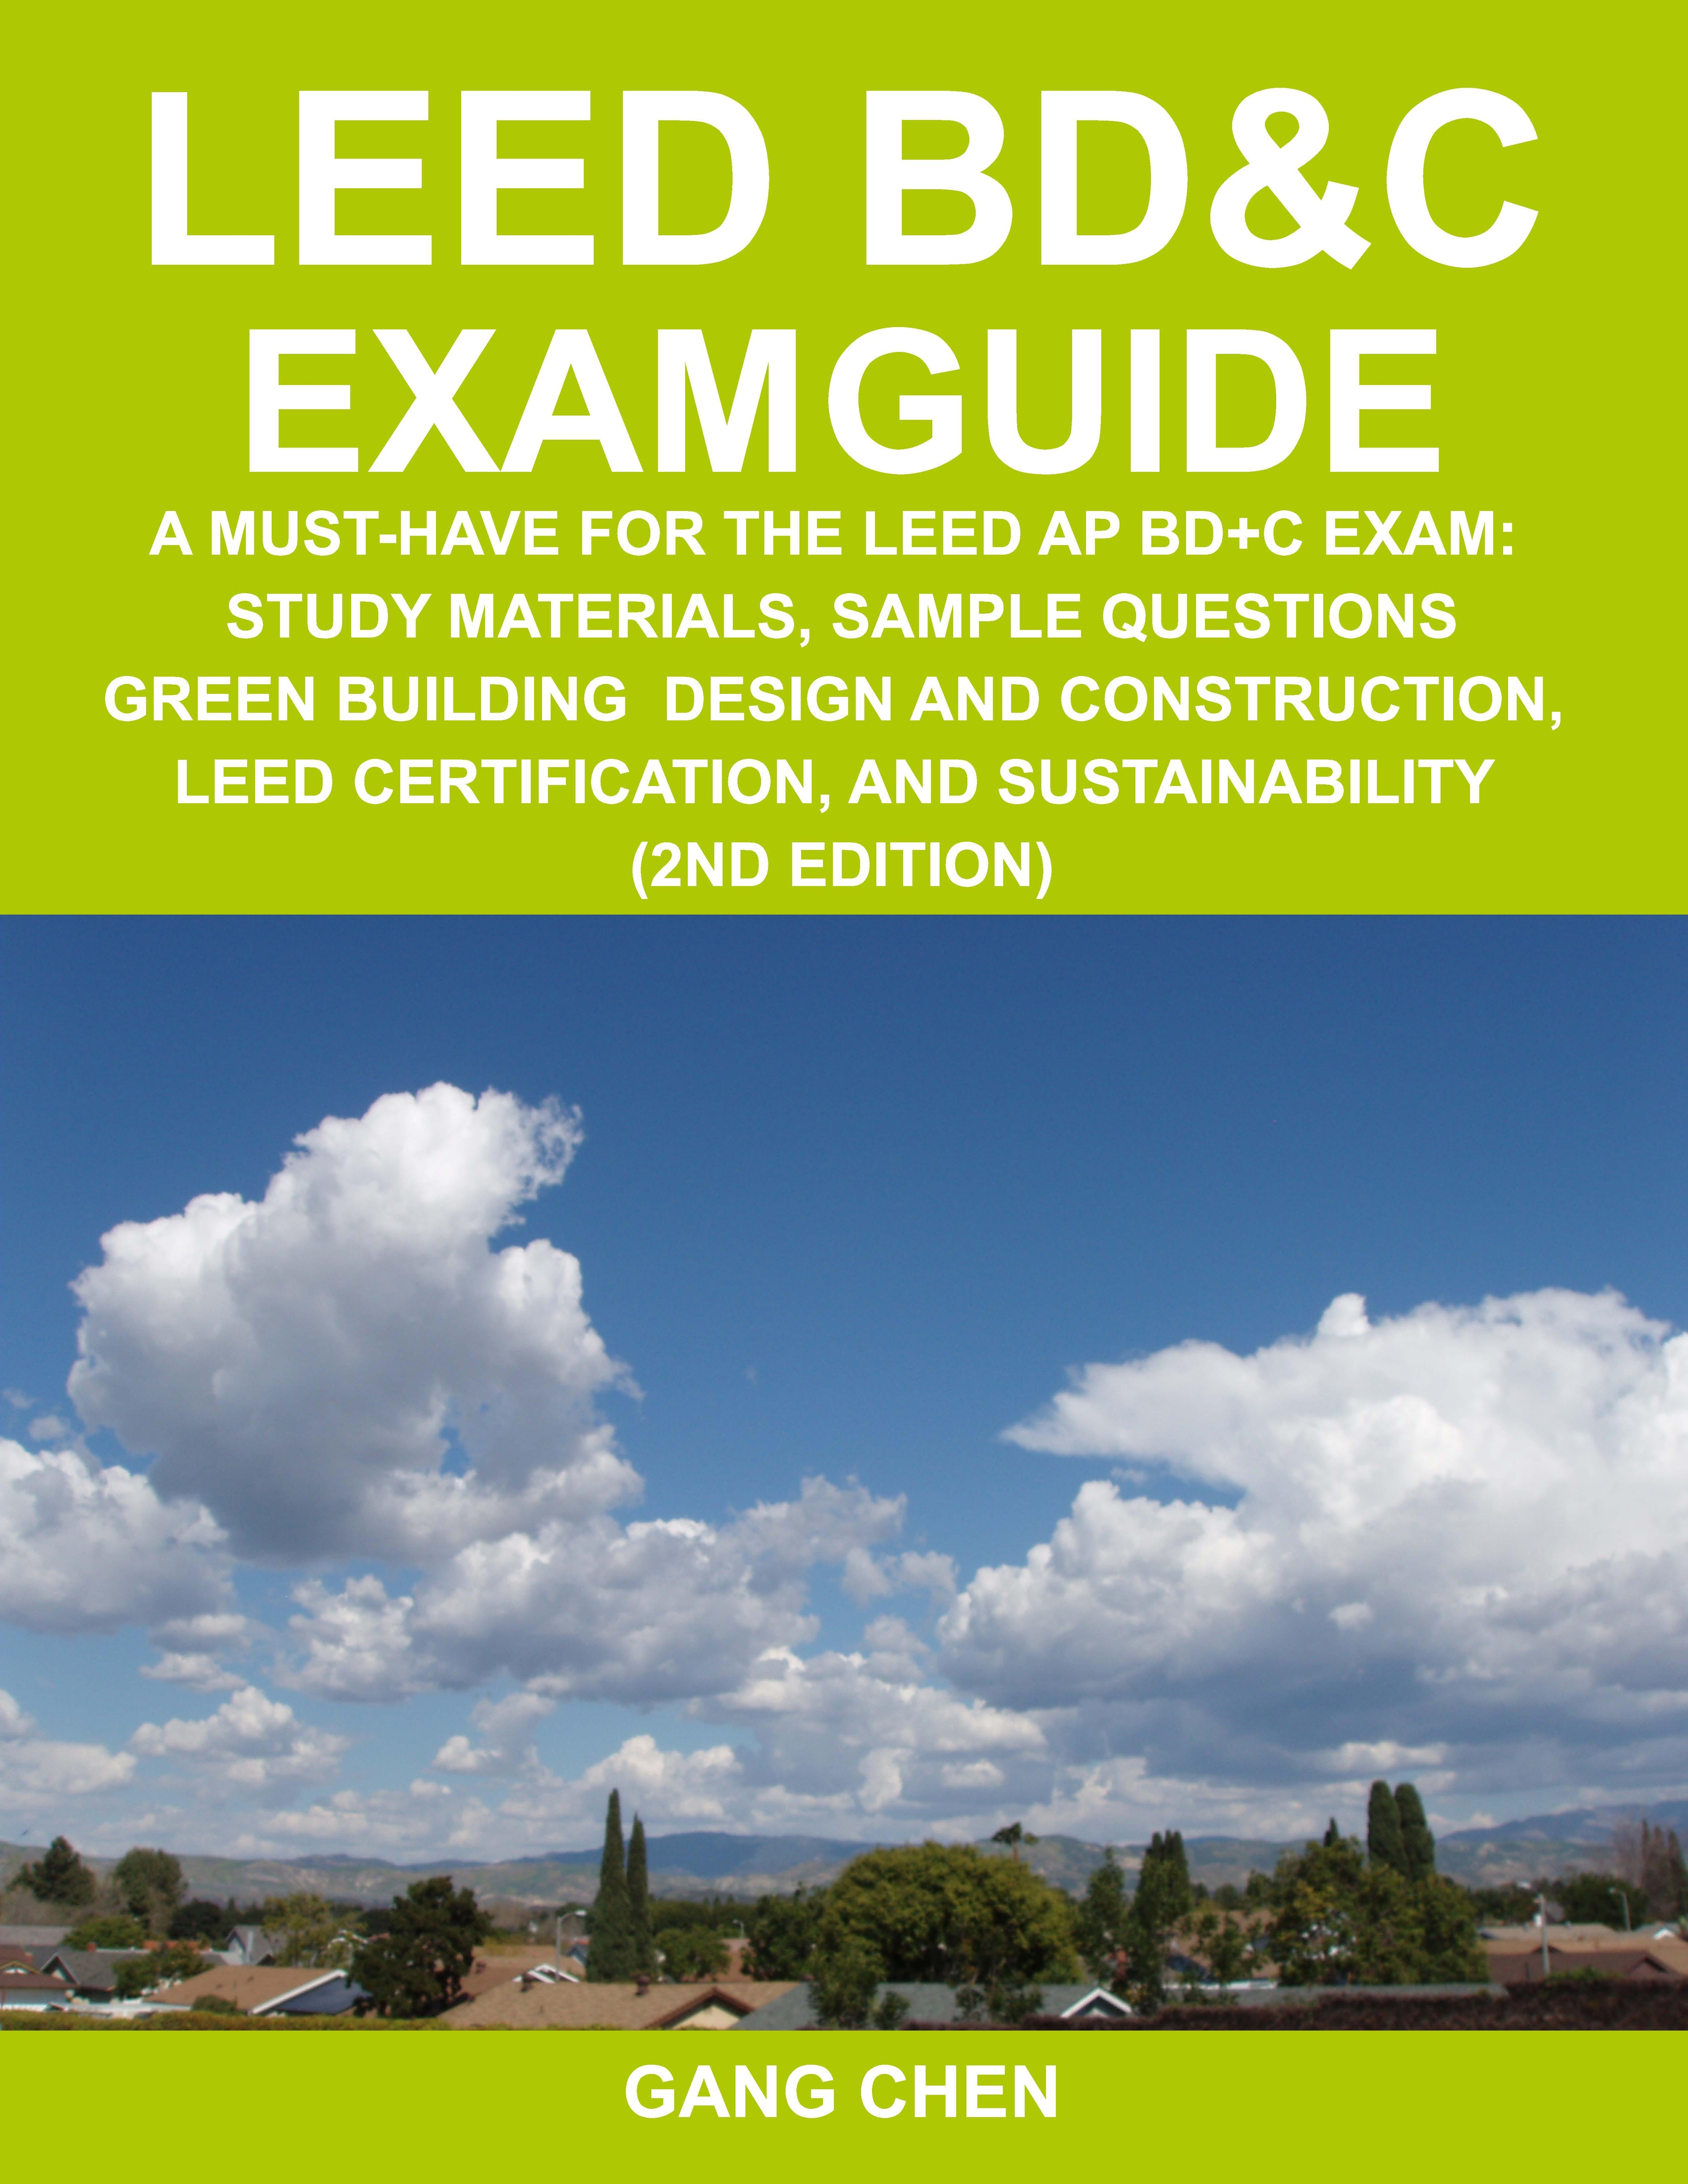 LEED BD&C EXAM GUIDE: a must-have for the LEED AP BD+C Exam: study materials, sample questions, green building design and construction, LEED certifica EB2370003088564